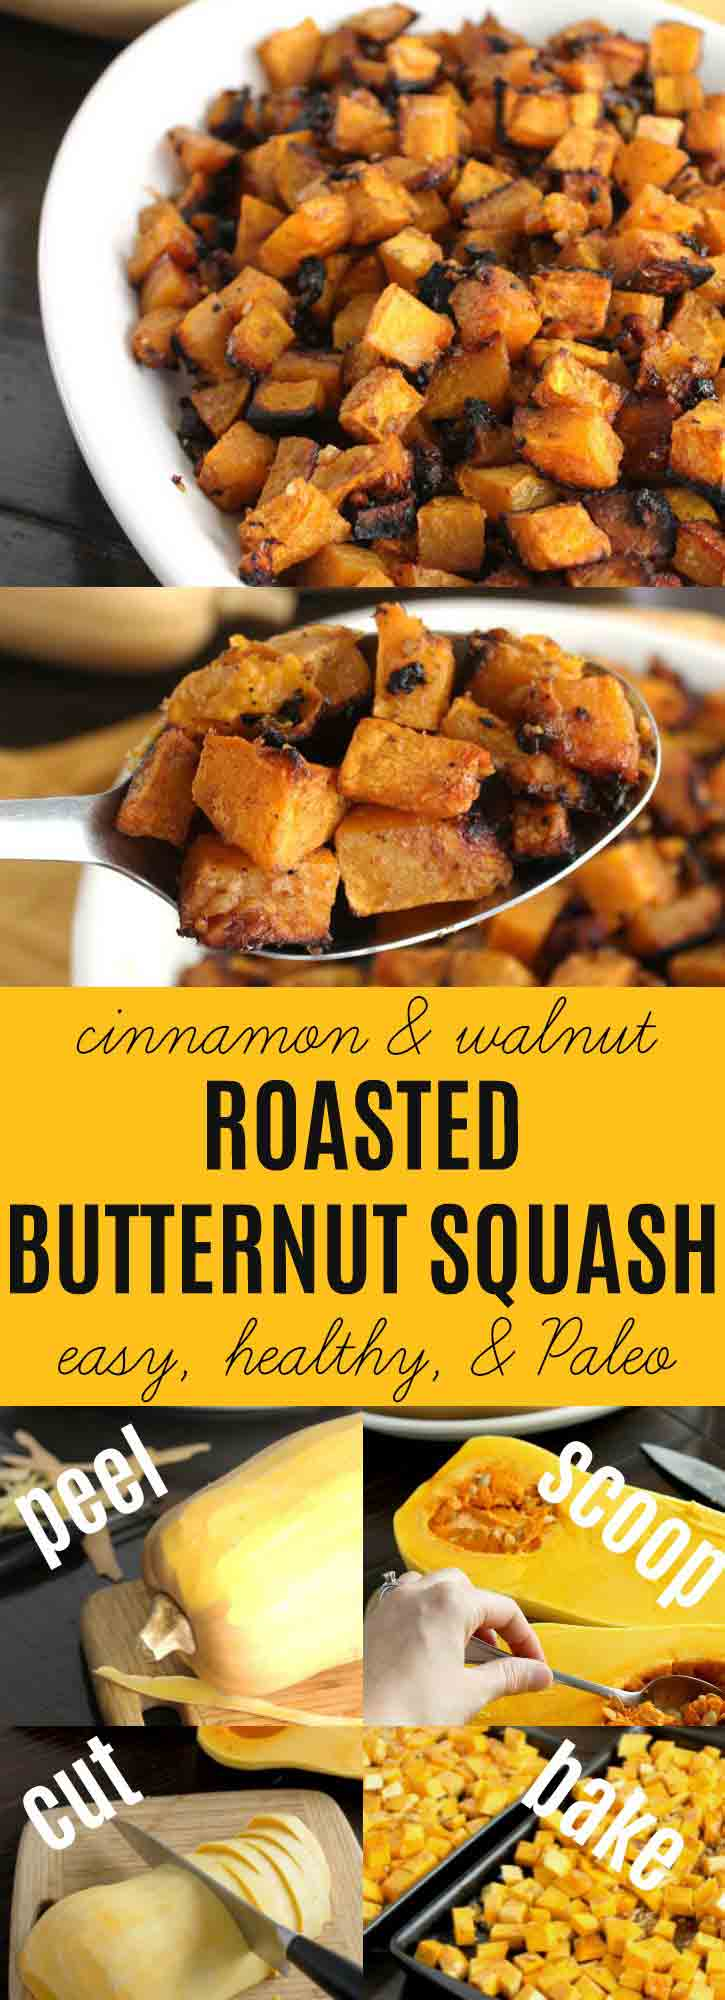 This Roasted Butternut Squash {Cinnamon & Walnuts} is my husband's favorite autumn spiced vegetable recipe. I love that it is so easy to make & healthy for our family. The sweetness of the squash is complimented with a touch of honey & the walnuts give this dish a nice crunch.  (Paleo, GAPS, SCD, AIP friendly) | thenourishedfamily.com